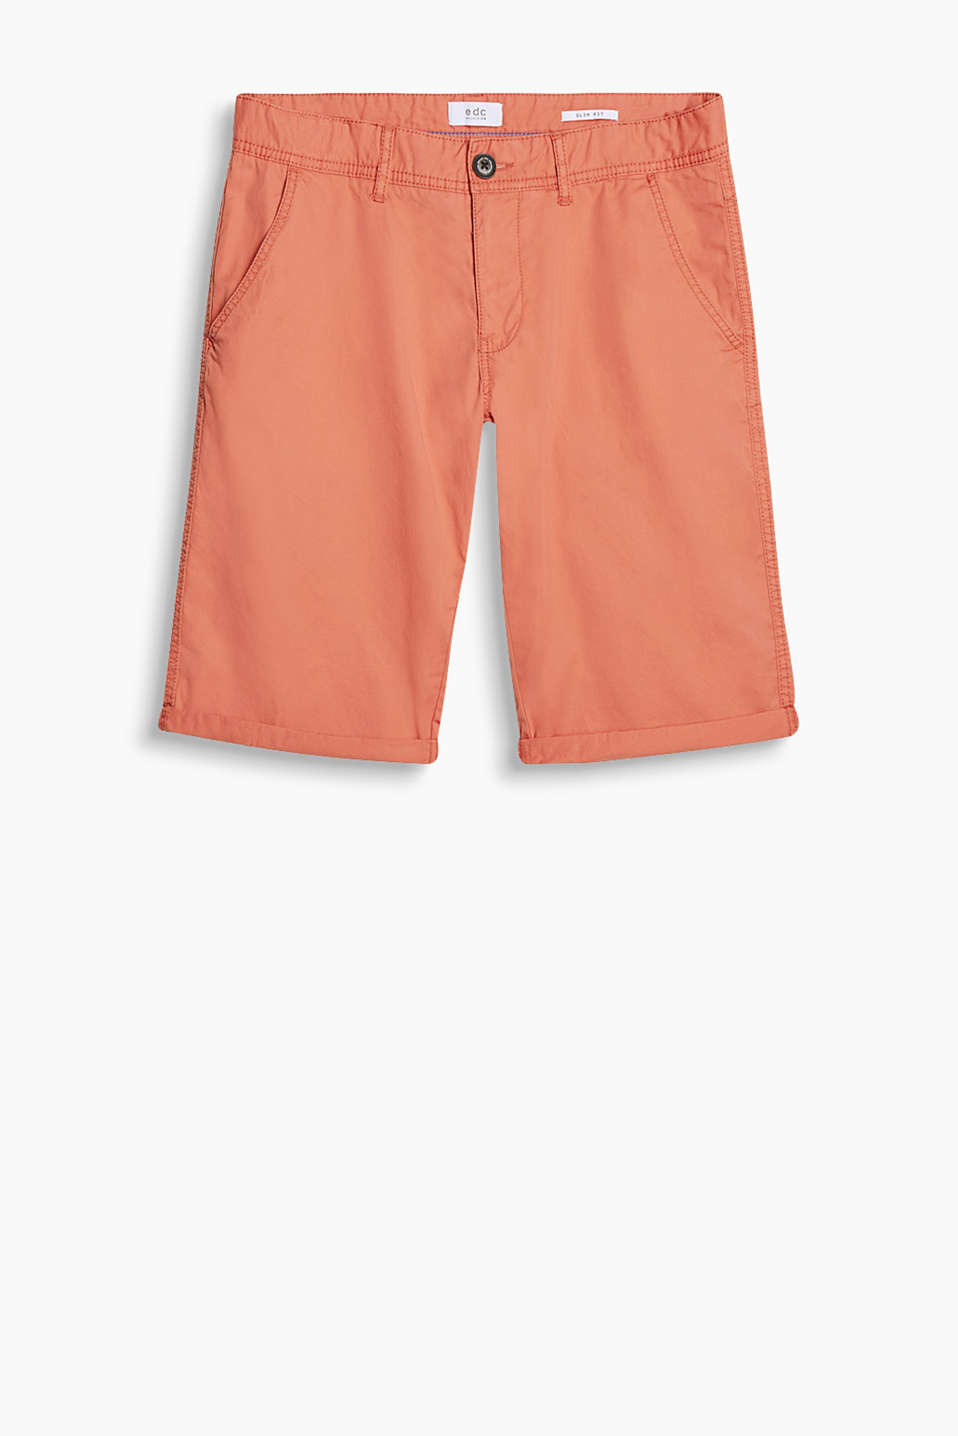 Chino shorts with a garment-washed finish, in 100% cotton